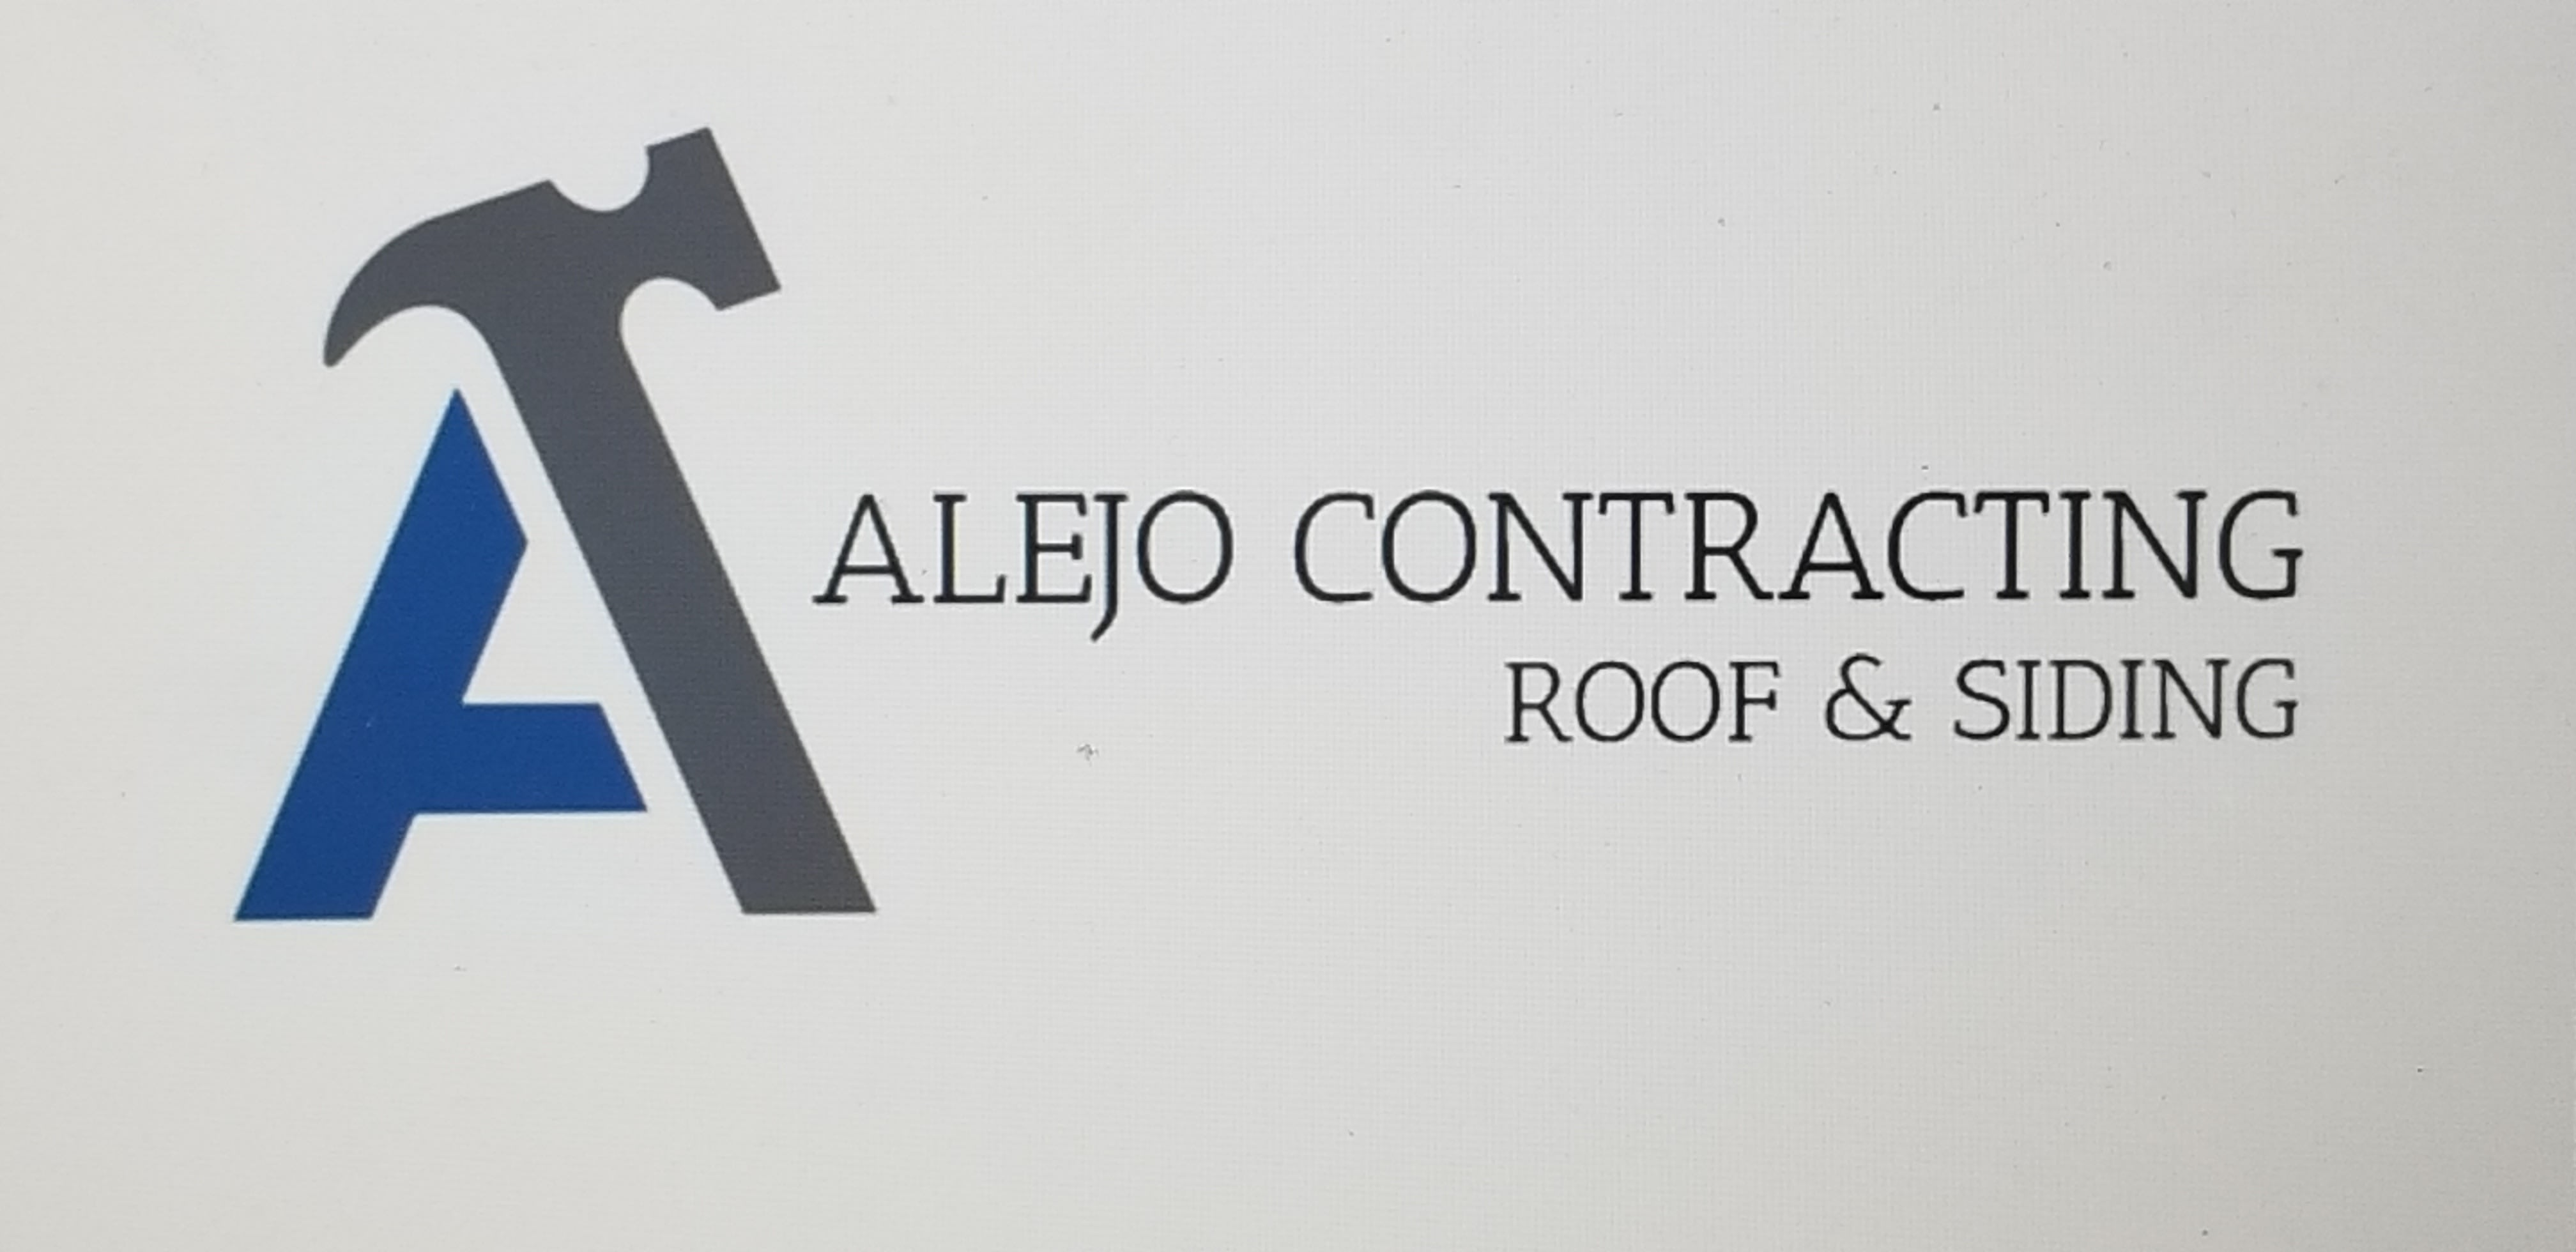 Alejo Contracting